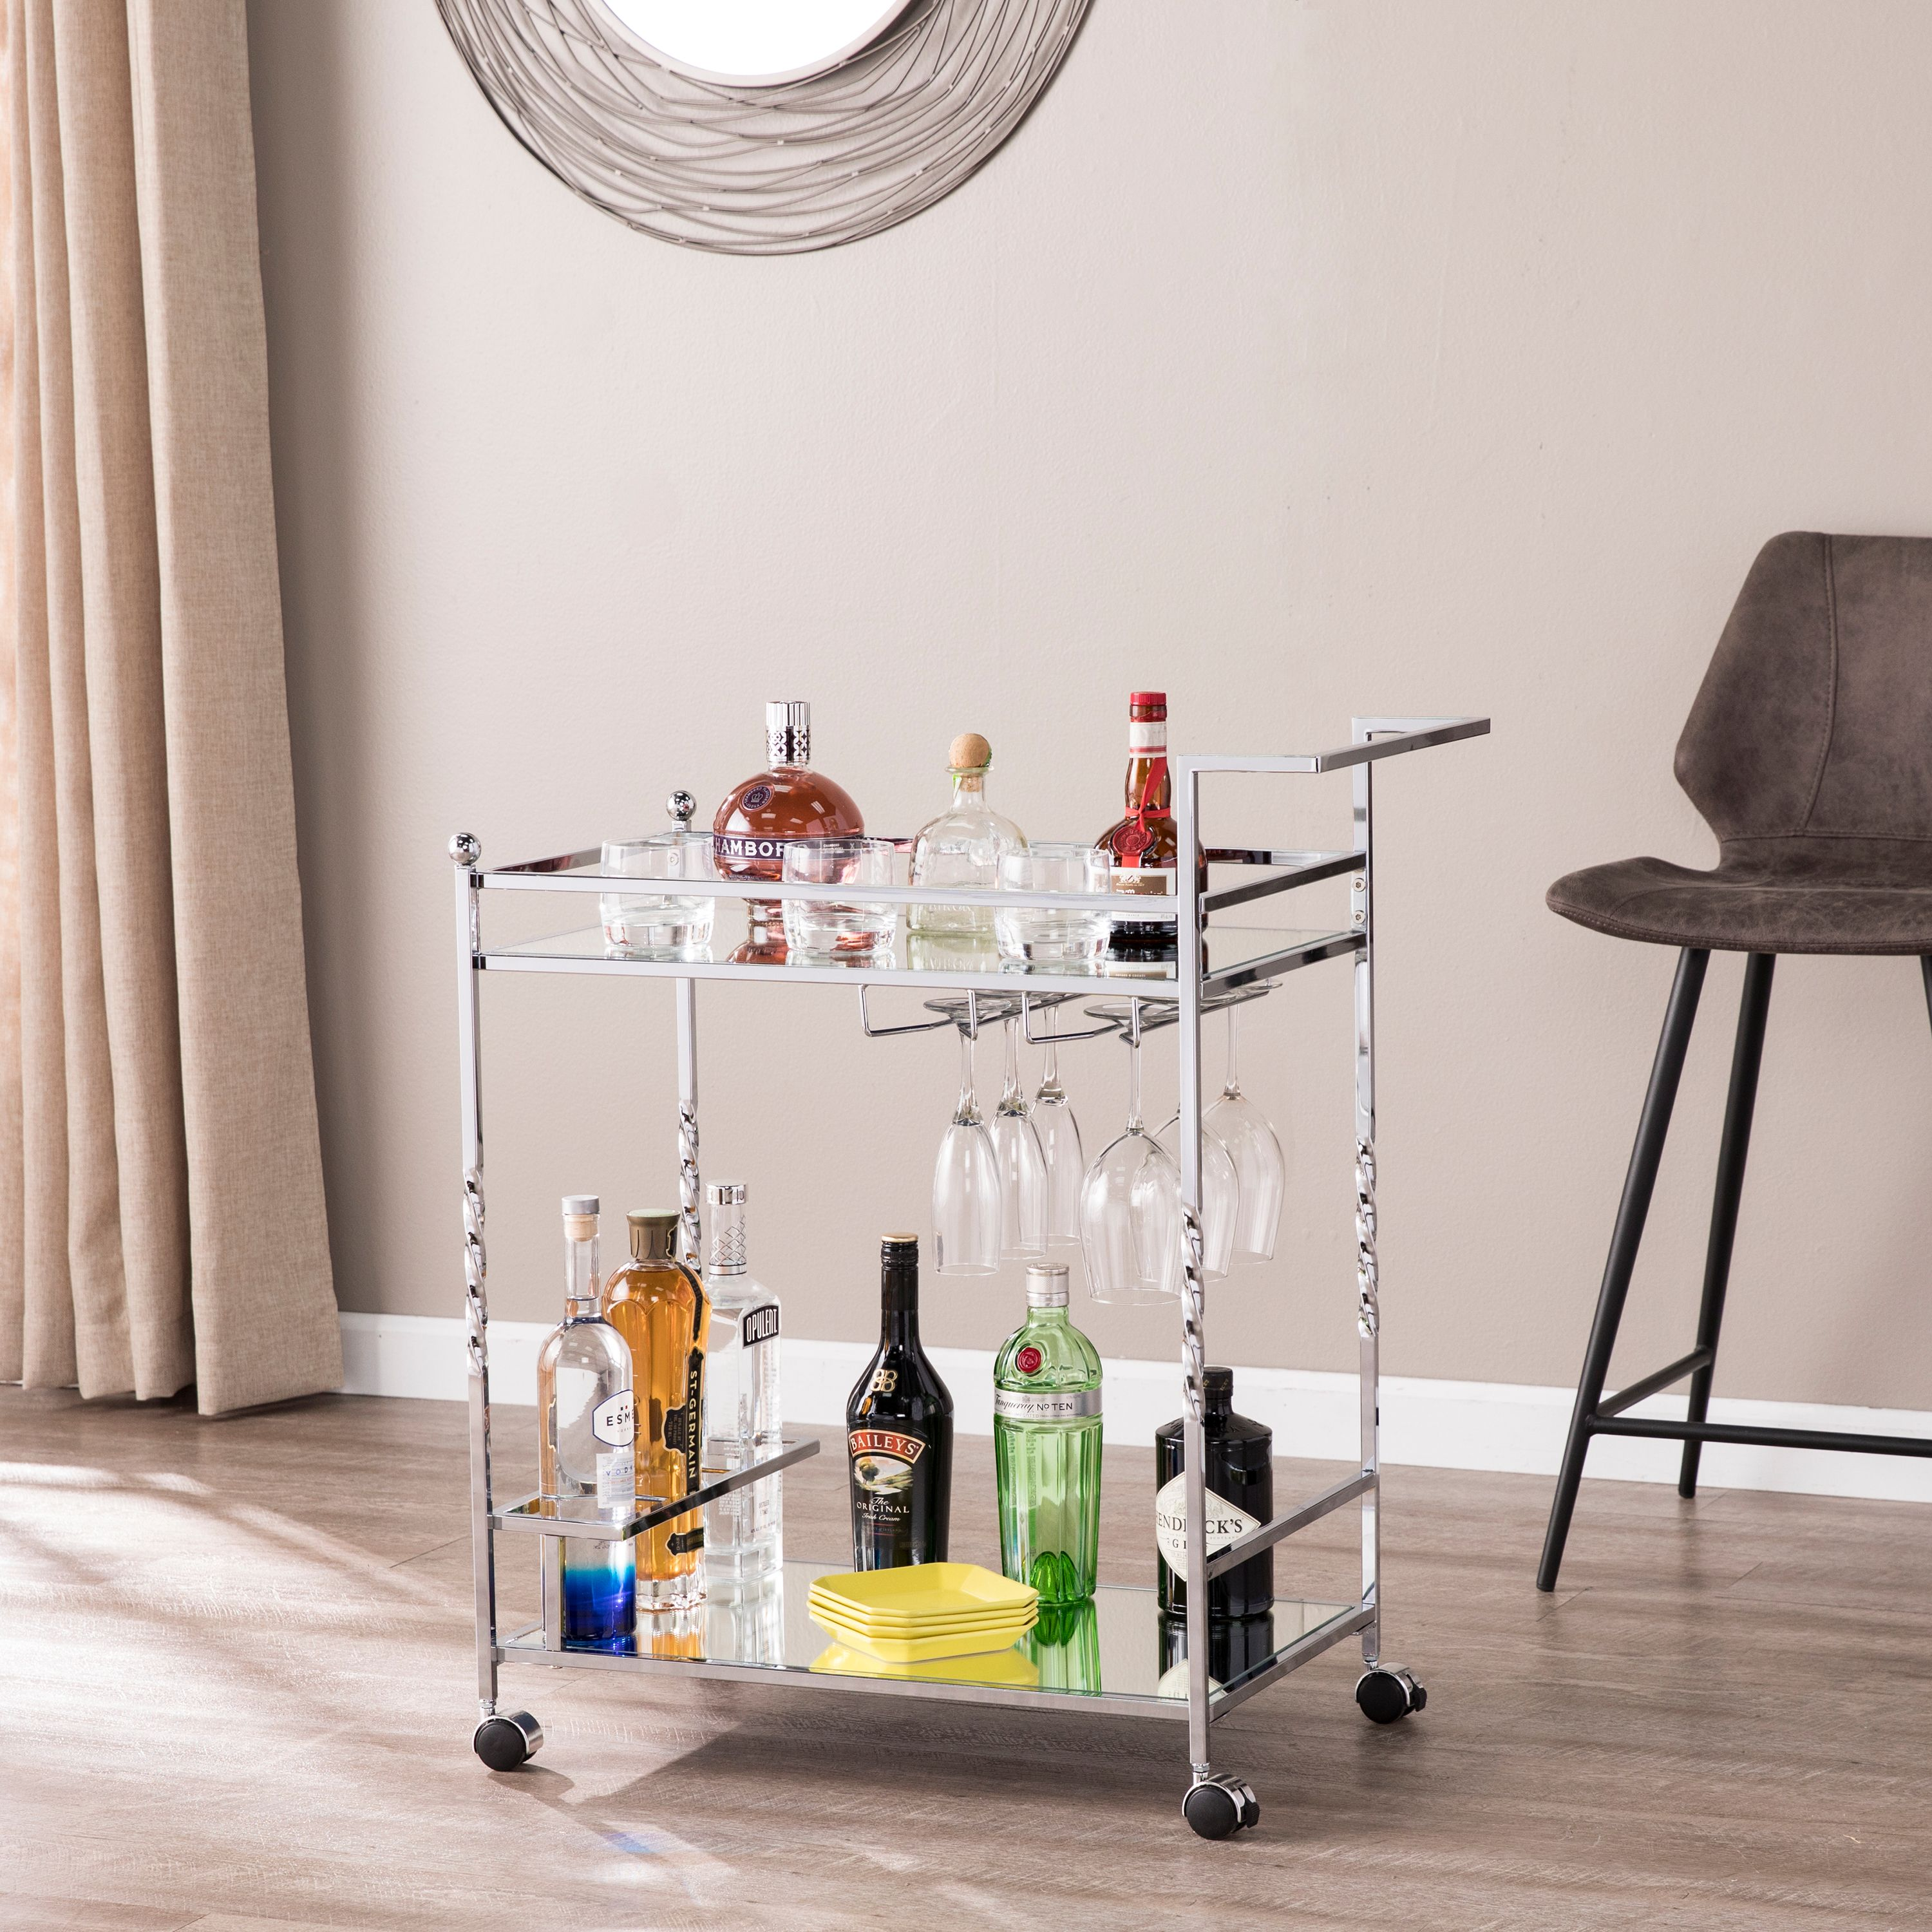 Ihoa Metal Mirrored Bar Cart, Chrome